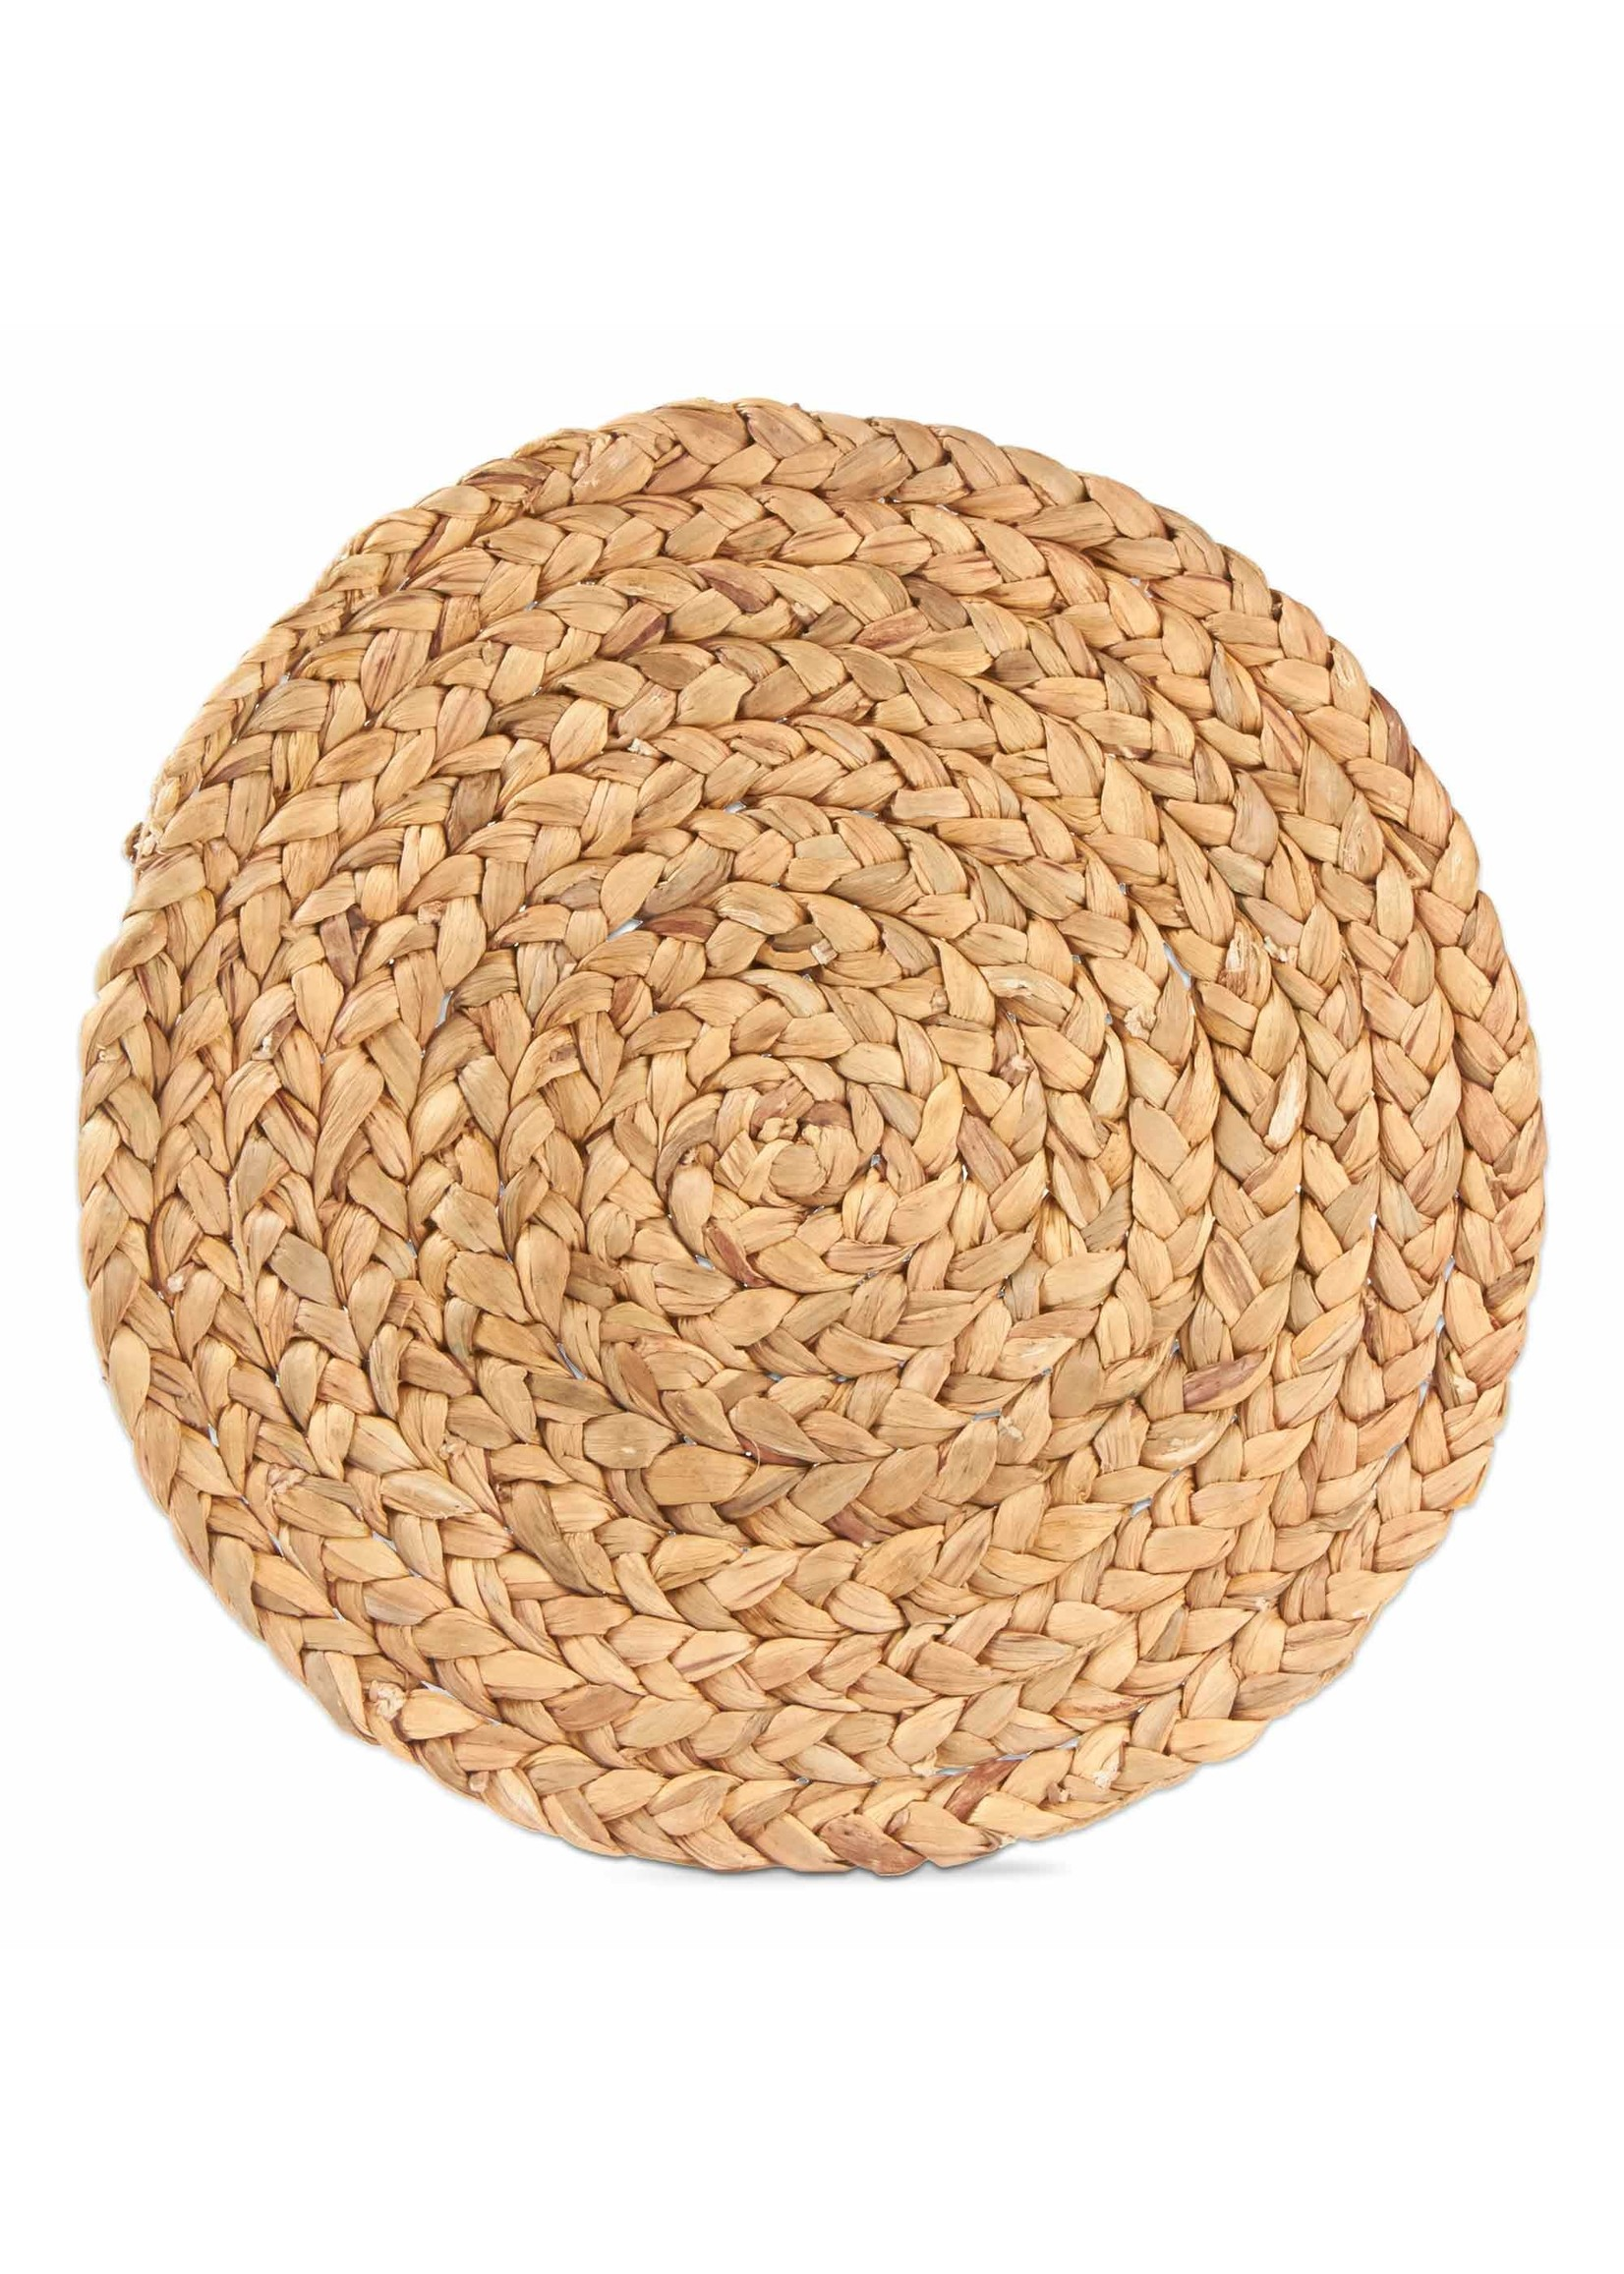 Tag Braided Water Hyacinth Round Placemat- Natural